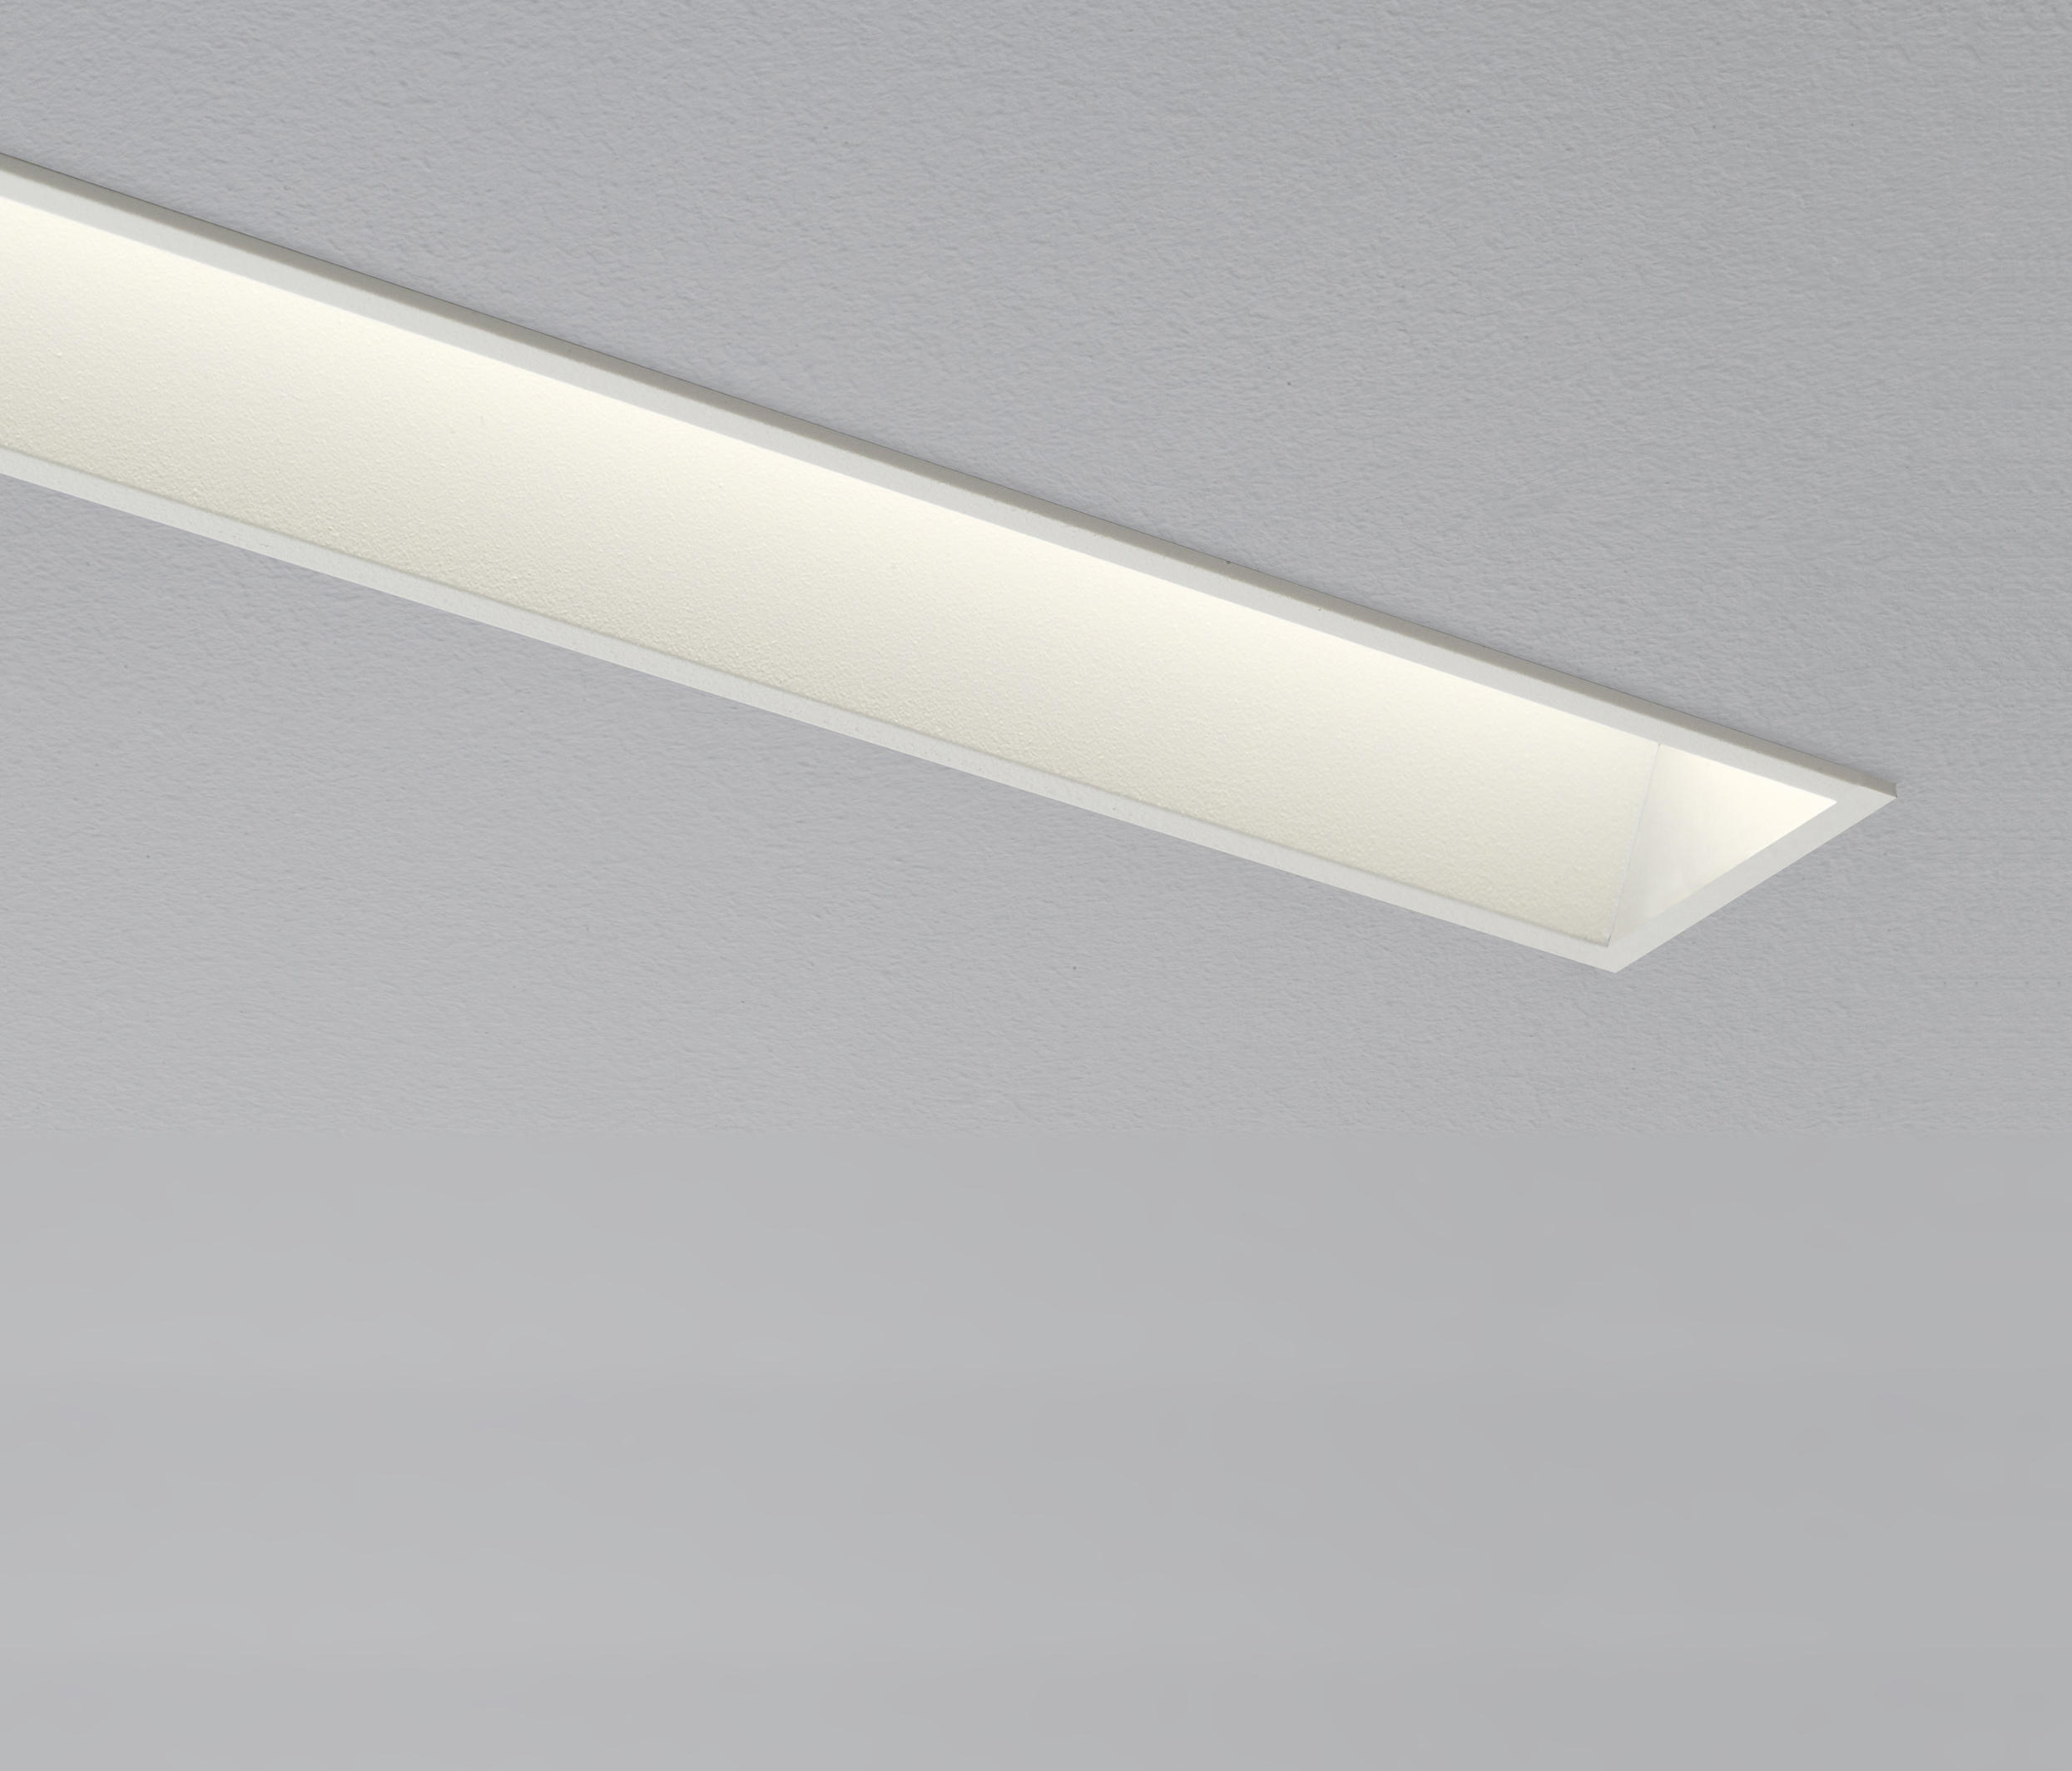 Fusion propro light system recessed with trim recessed ceiling fusion propro light system recessed with trim by aqlus recessed ceiling strip lights aloadofball Choice Image